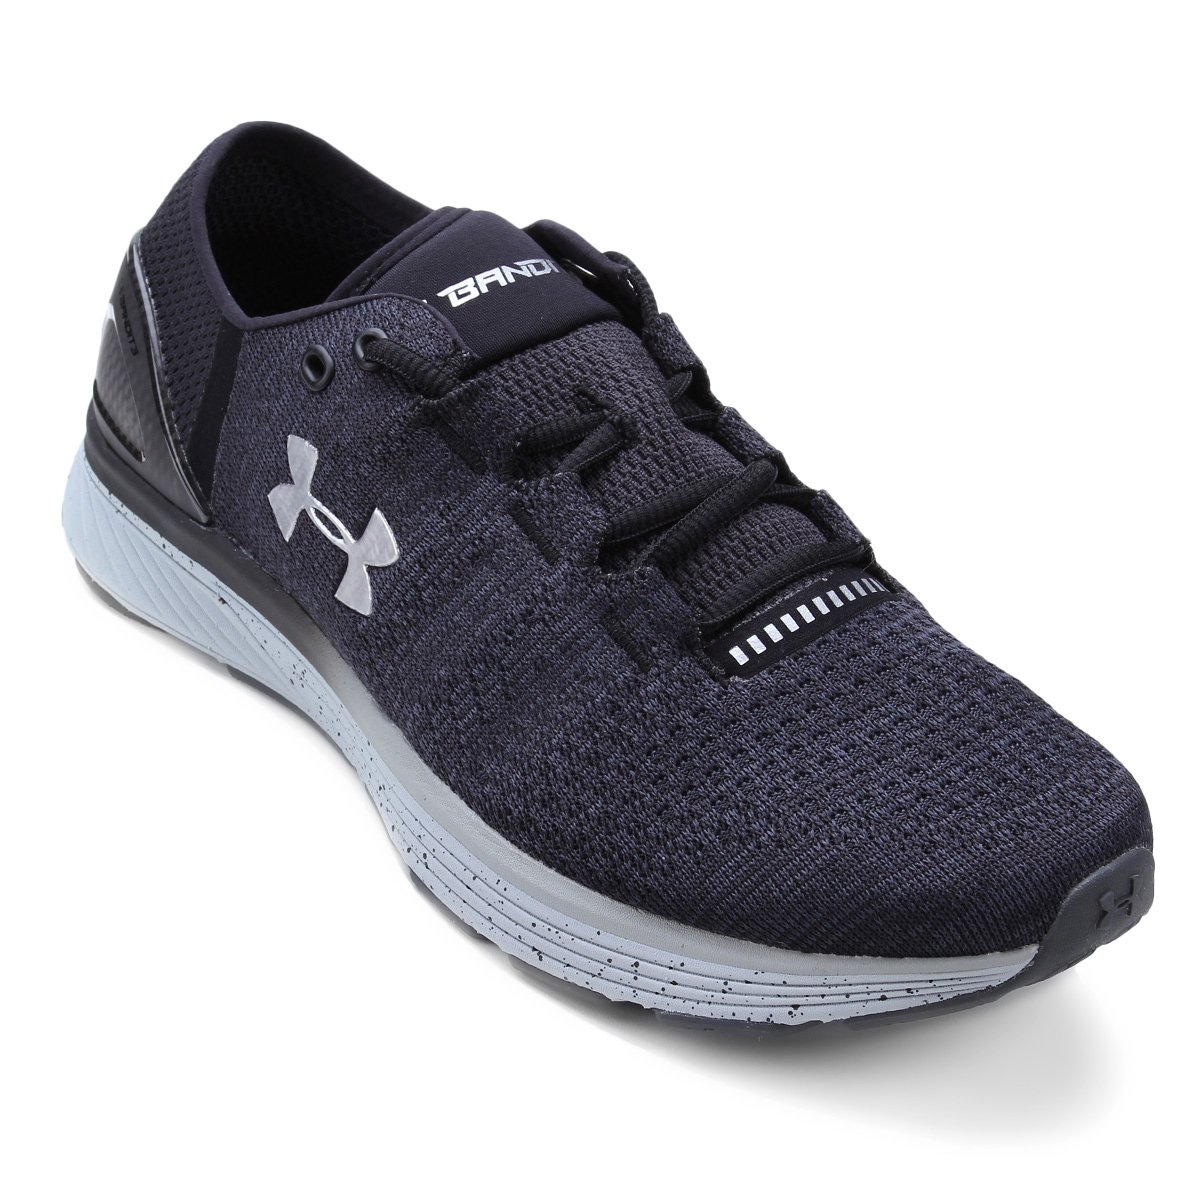 uk availability 17f4b c4303 Tênis Under Armour Charged Bandit 3 Masculino - Cinza e Preto